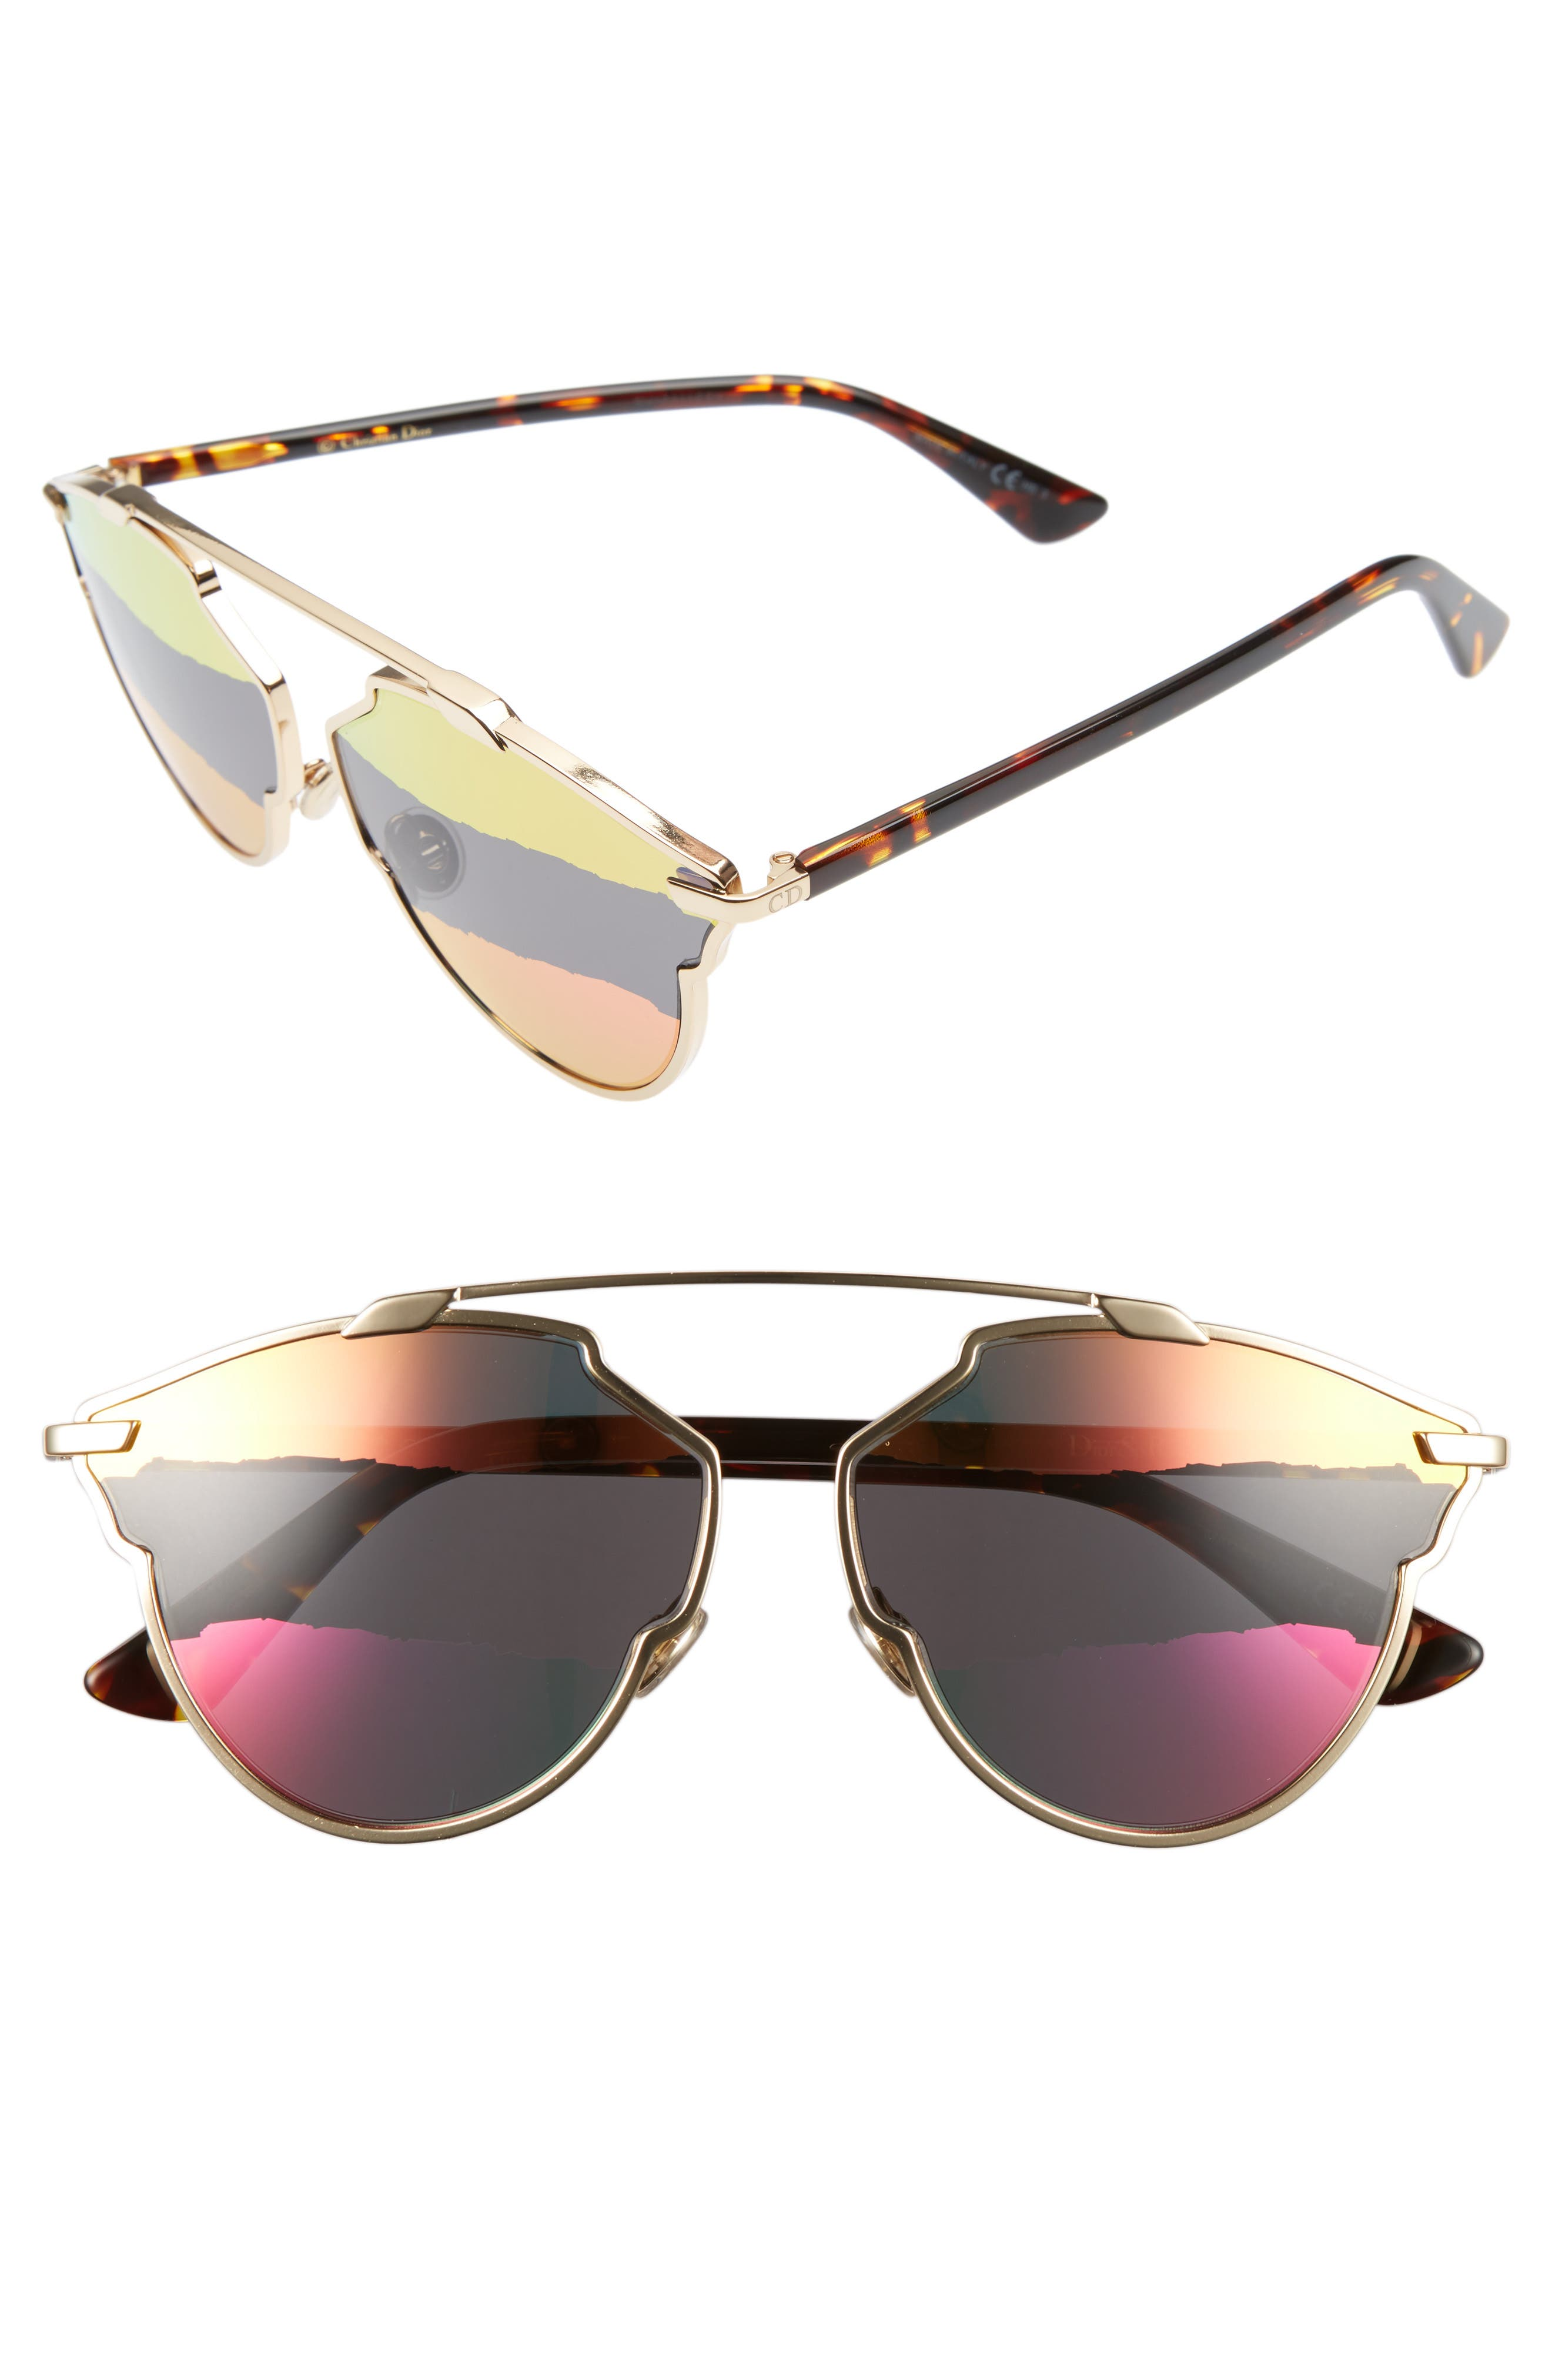 Main Image - Dior So Real 59mm Brow Bar Sunglasses